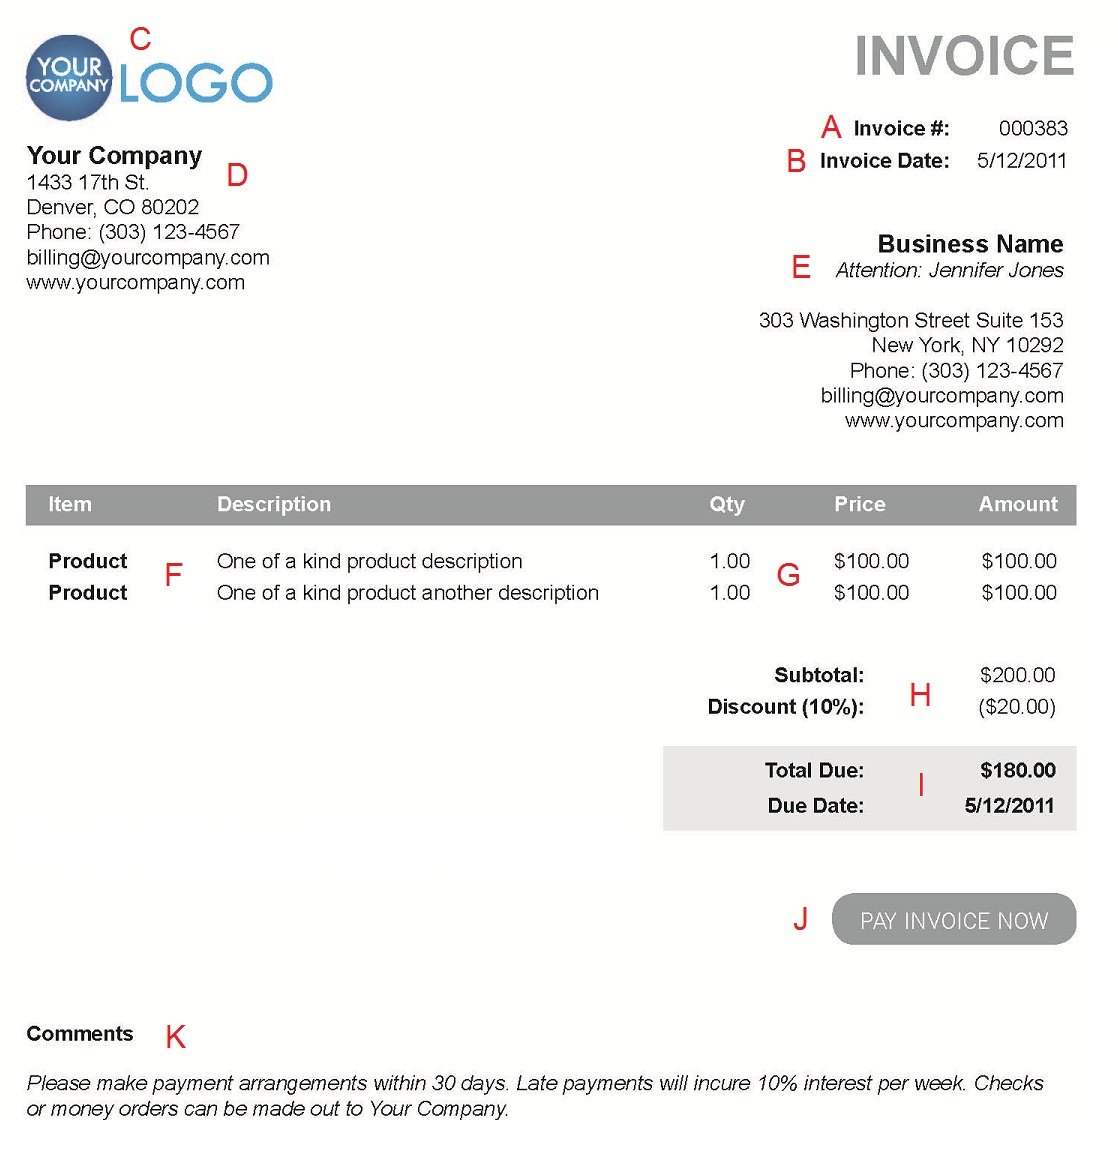 Imagerackus  Pleasing The  Different Sections Of An Electronic Payment Invoice With Lovely A  With Delectable Computer Repair Invoice Also Free Download Invoice Template In Addition Cleaning Service Invoice And Generic Invoice Pdf As Well As Standard Invoice Form Additionally Sending An Invoice From Paysimplecom With Imagerackus  Lovely The  Different Sections Of An Electronic Payment Invoice With Delectable A  And Pleasing Computer Repair Invoice Also Free Download Invoice Template In Addition Cleaning Service Invoice From Paysimplecom